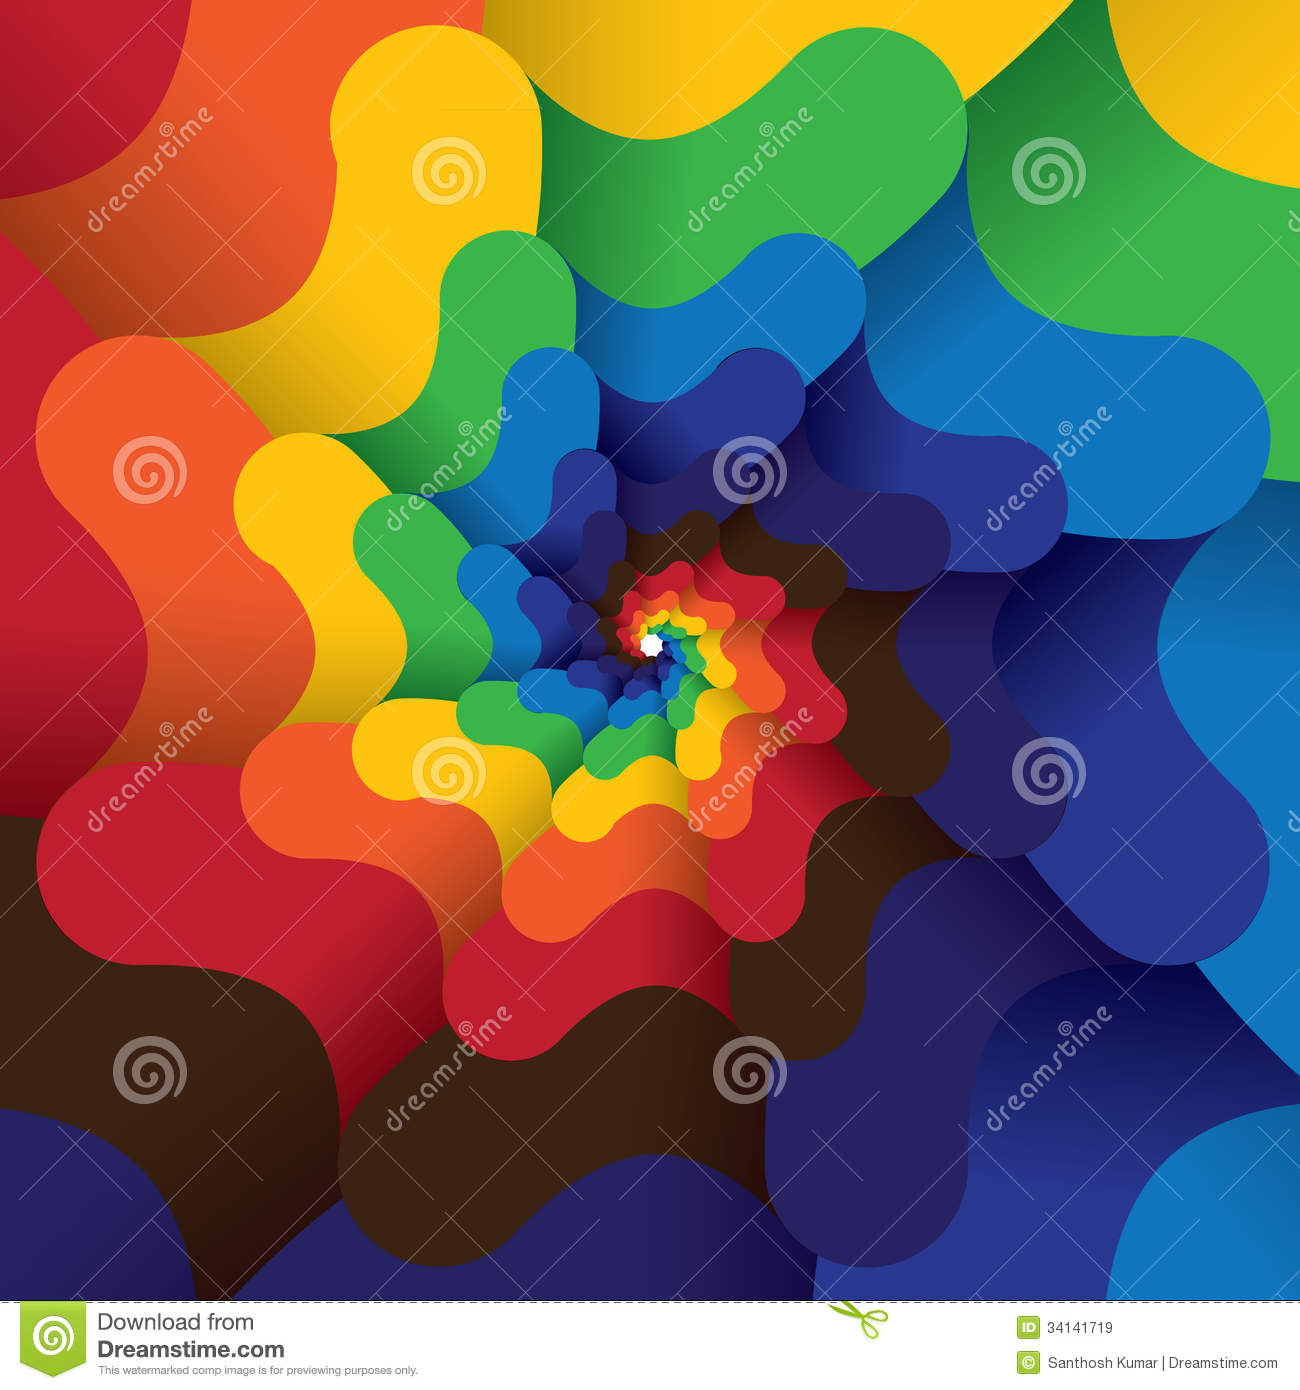 Colorful abstract infinite spiral of bright colors background